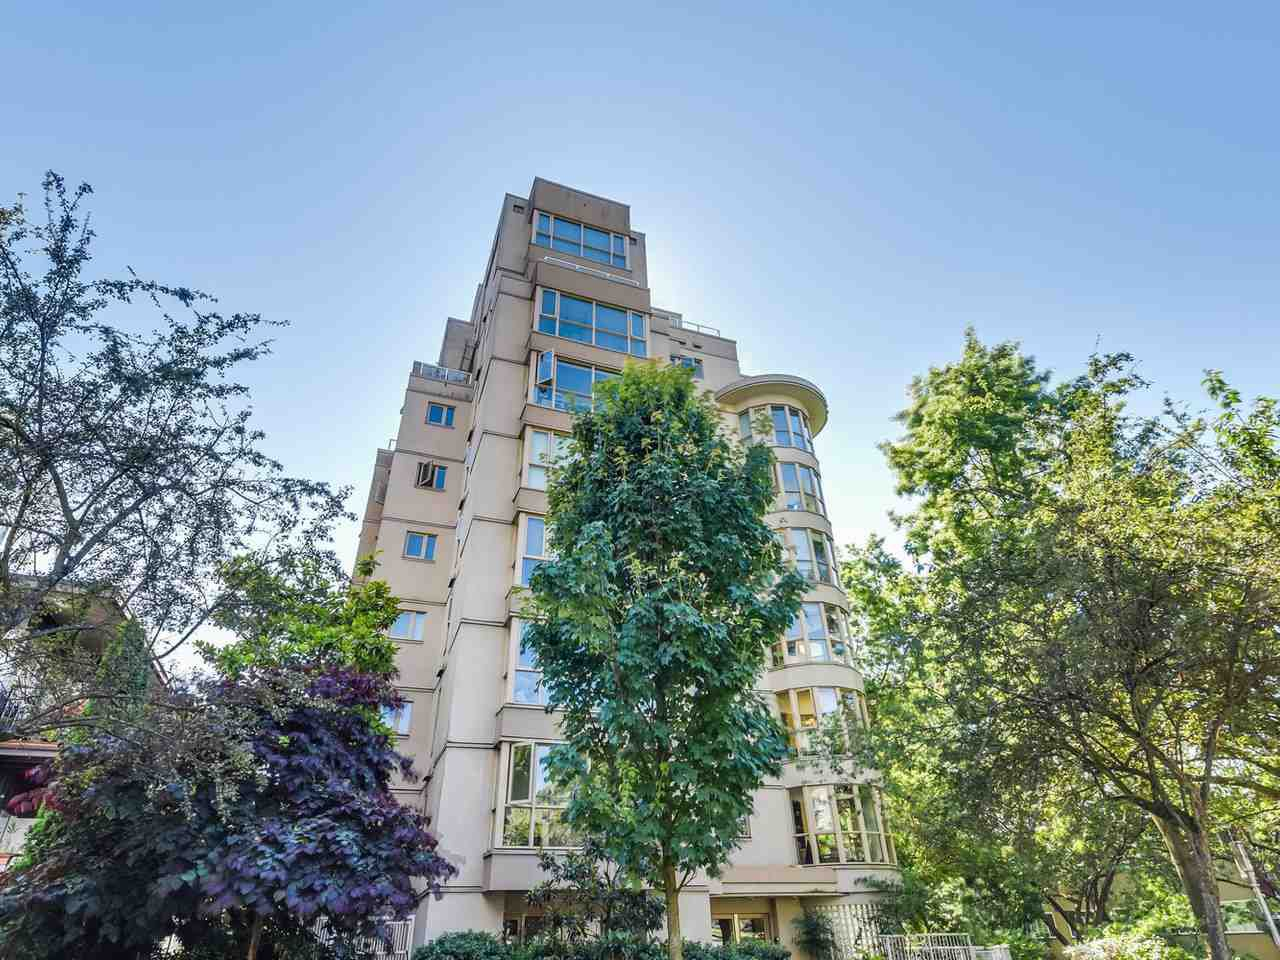 """Main Photo: 302 1290 BURNABY Street in Vancouver: West End VW Condo for sale in """"The Bellevue"""" (Vancouver West)  : MLS®# R2187984"""